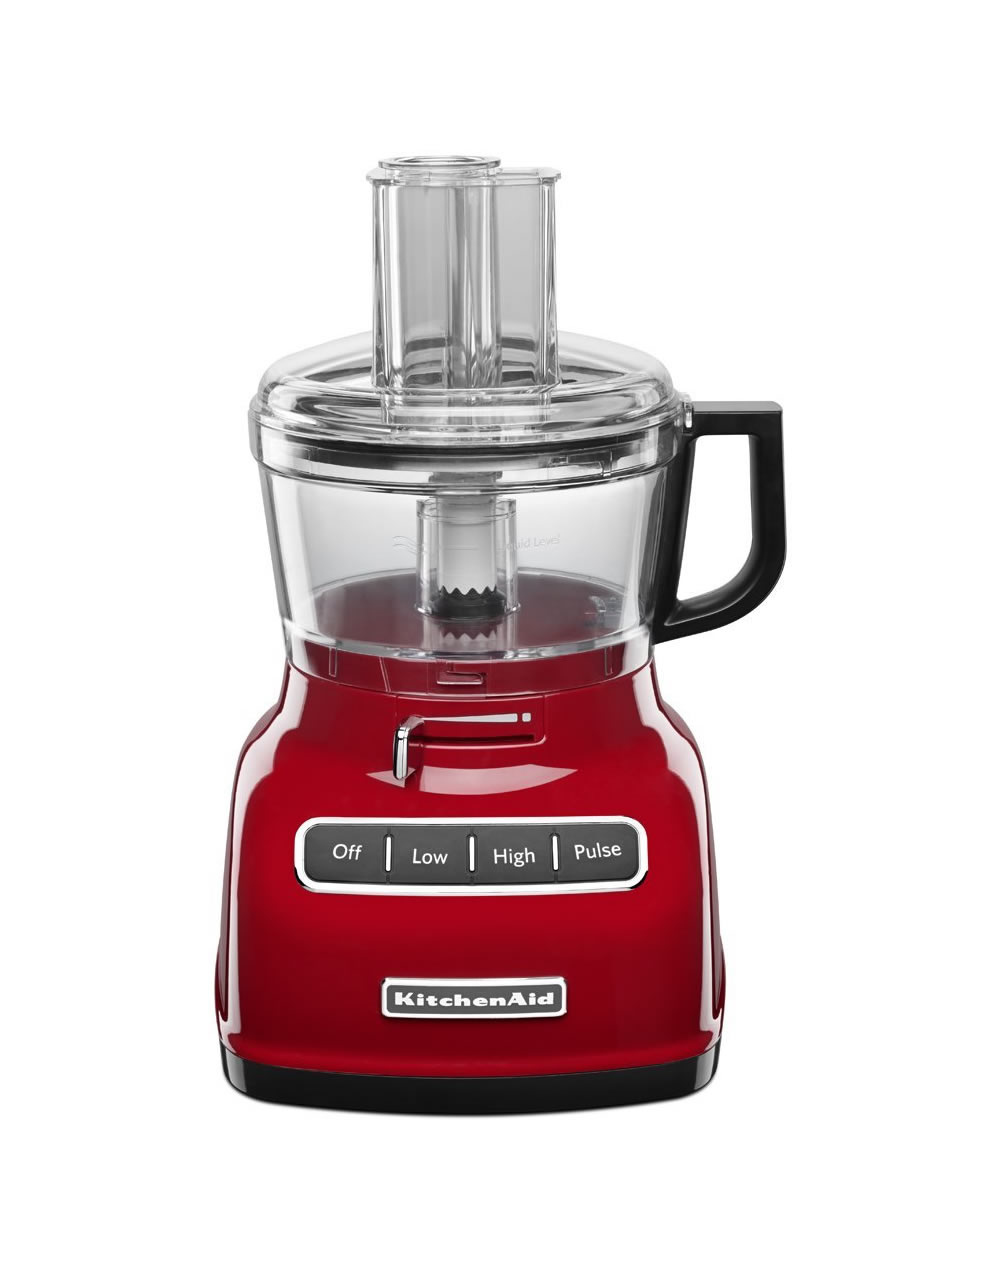 Whats Better A Food Processor Or Blender